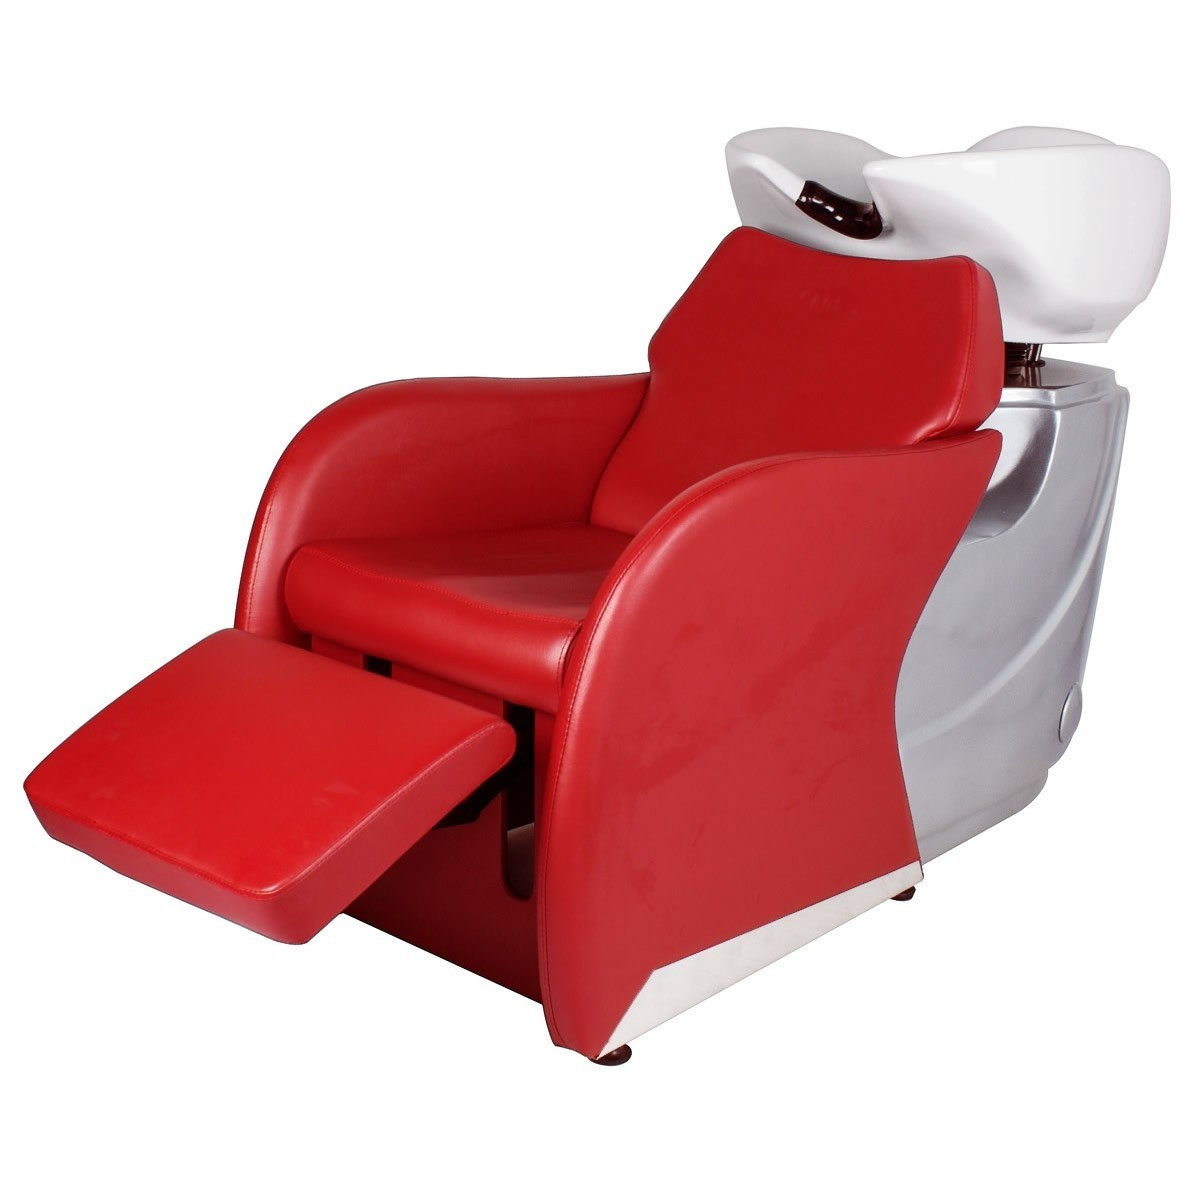 """ODESSY"" Shampoo Backwash Unit in Cardinal Red"